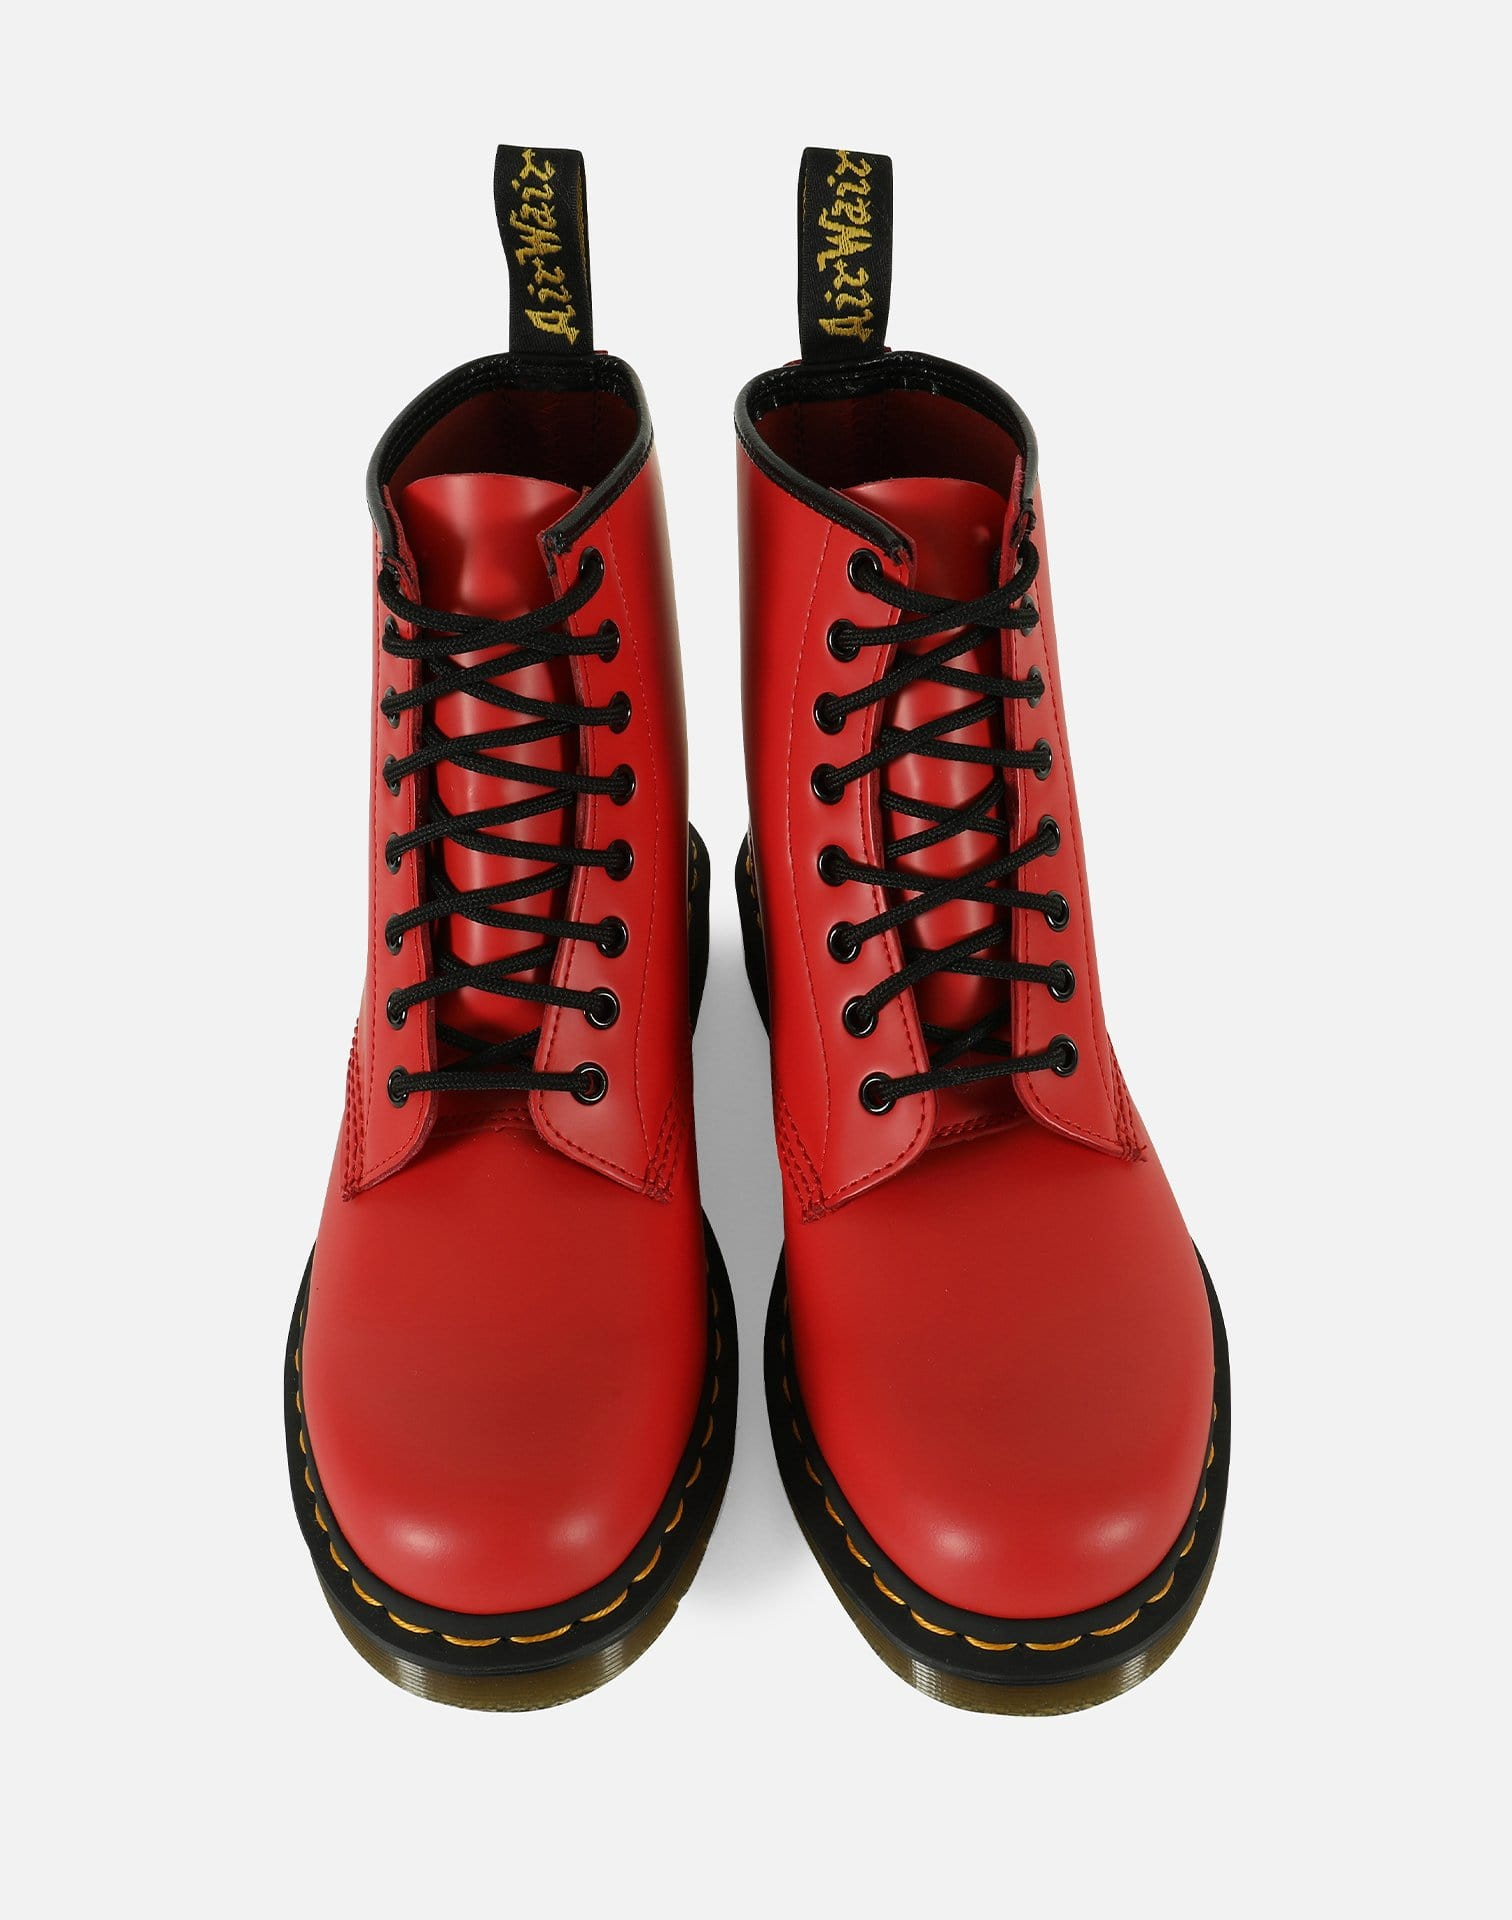 Dr. Martens Women's 1460 Color Pop Boots